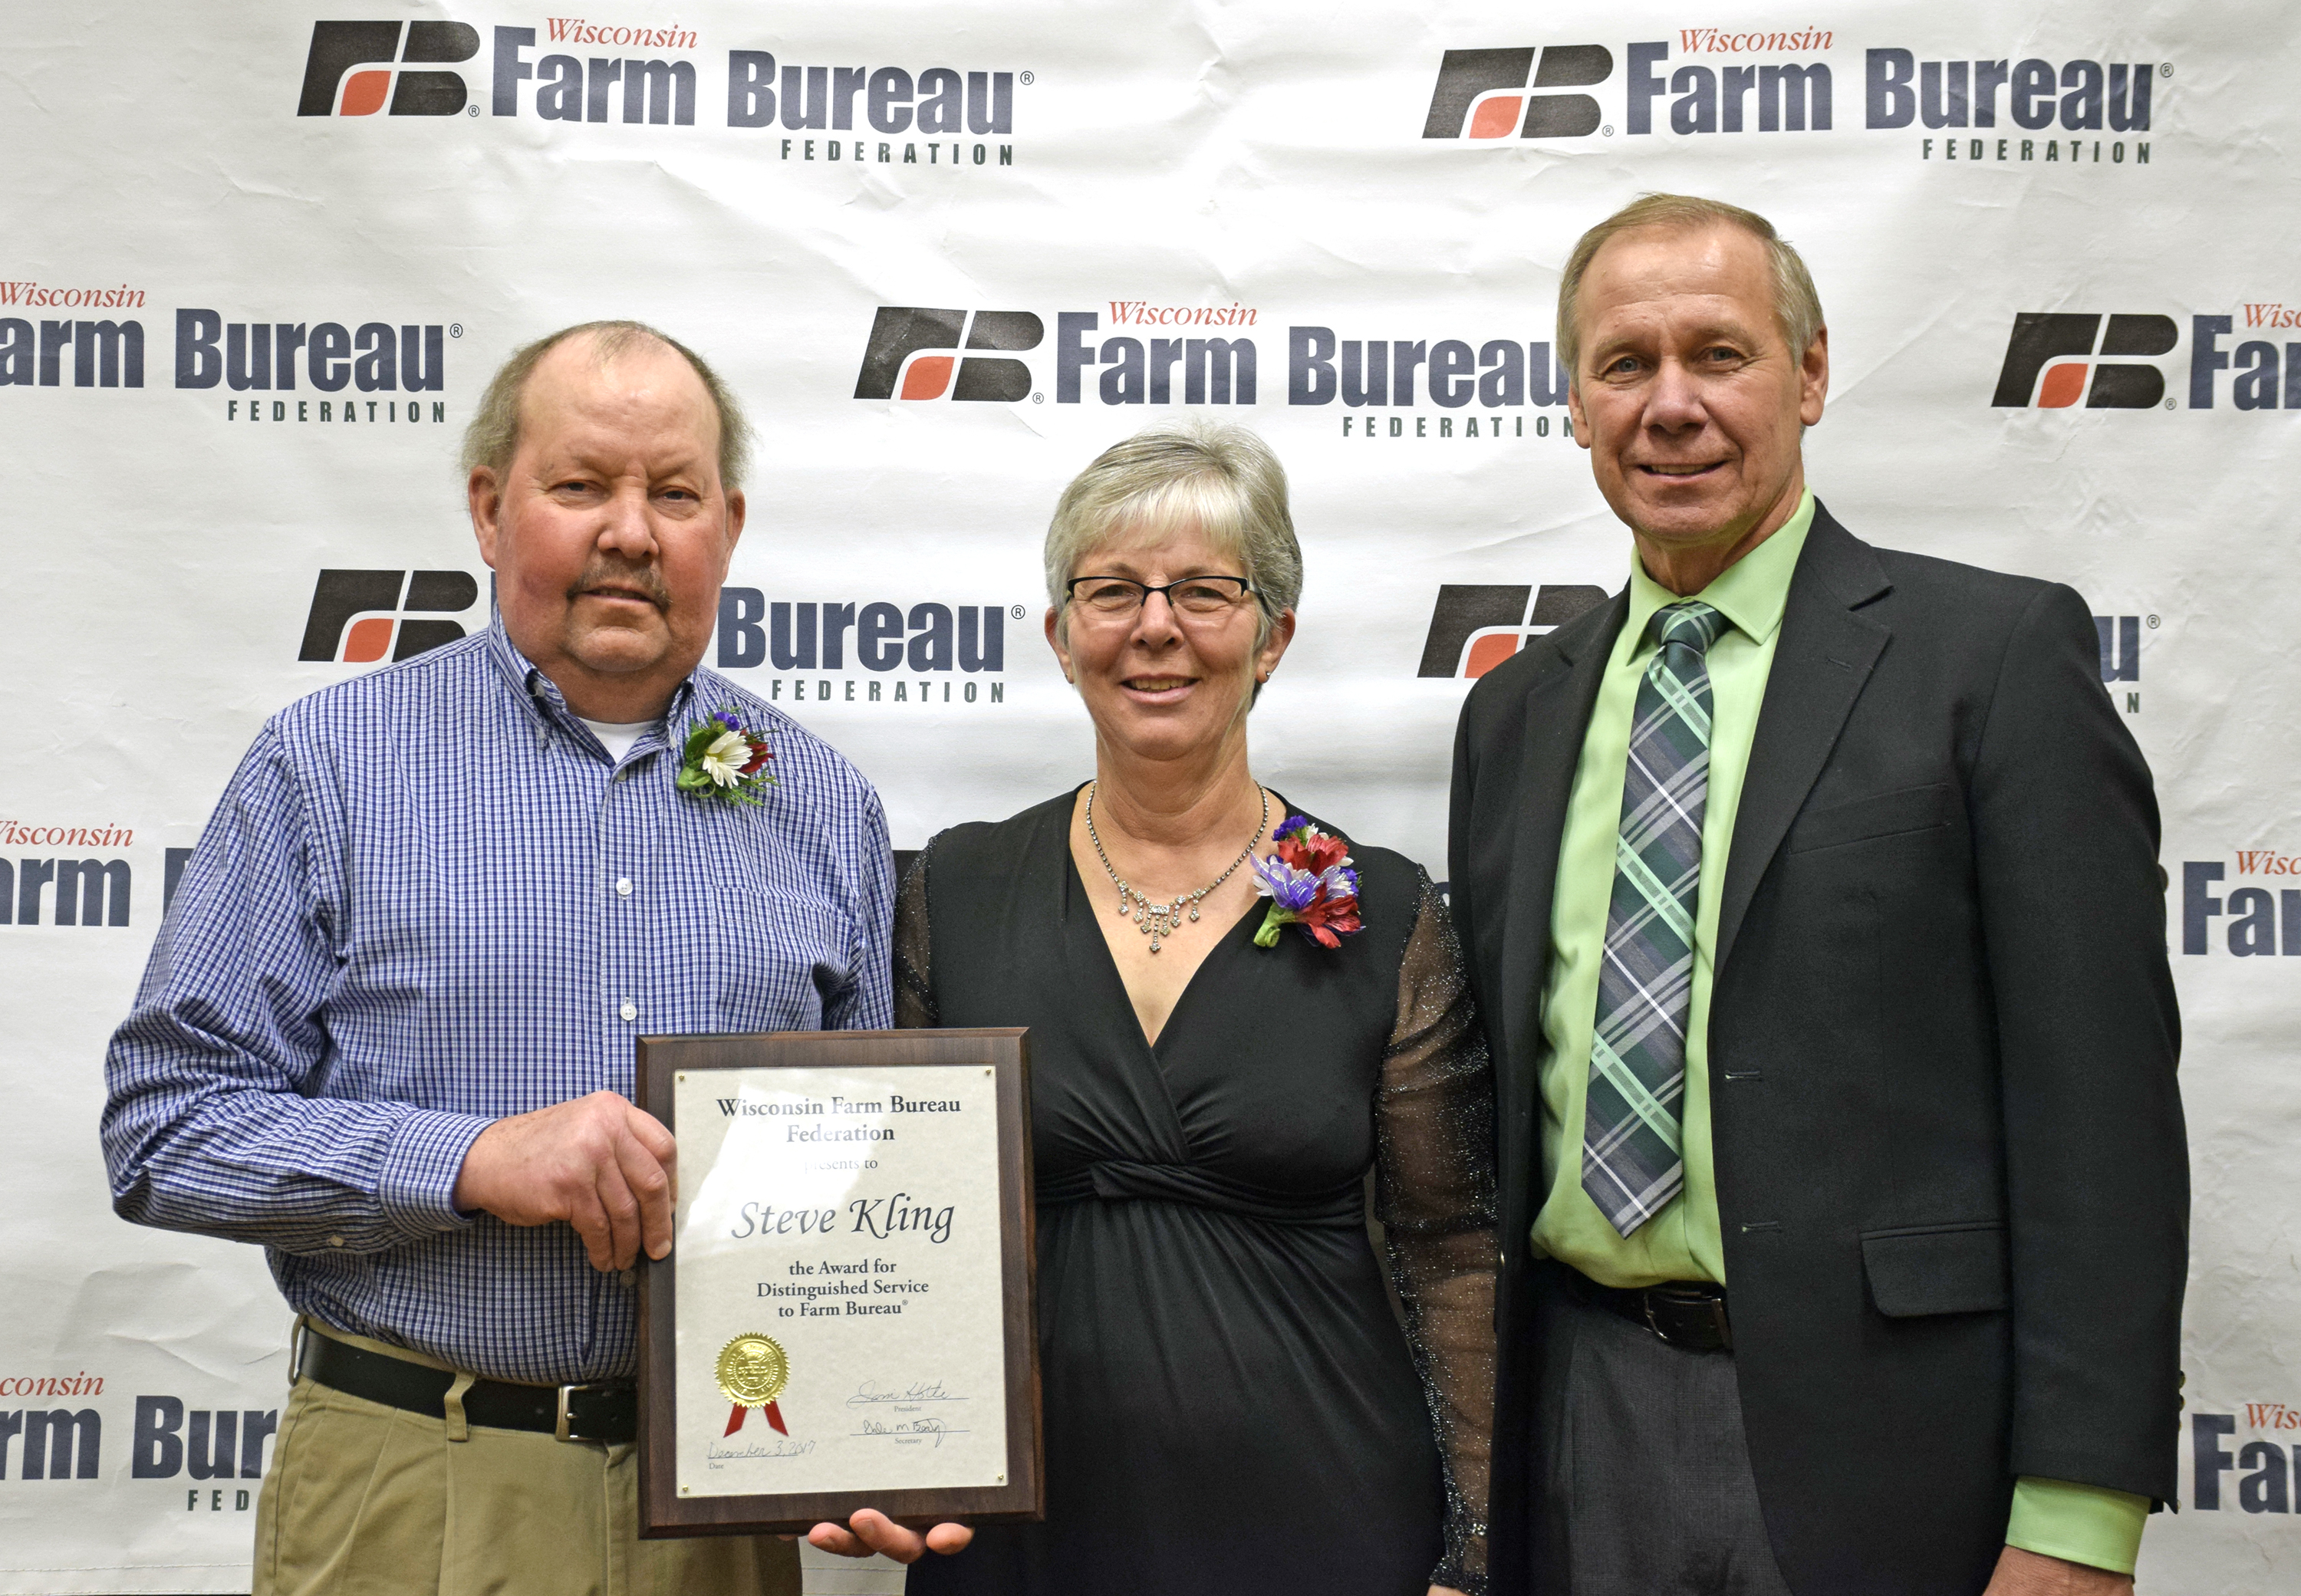 Steve Kling Receives 'Distinguished Service to Farm Bureau' Award